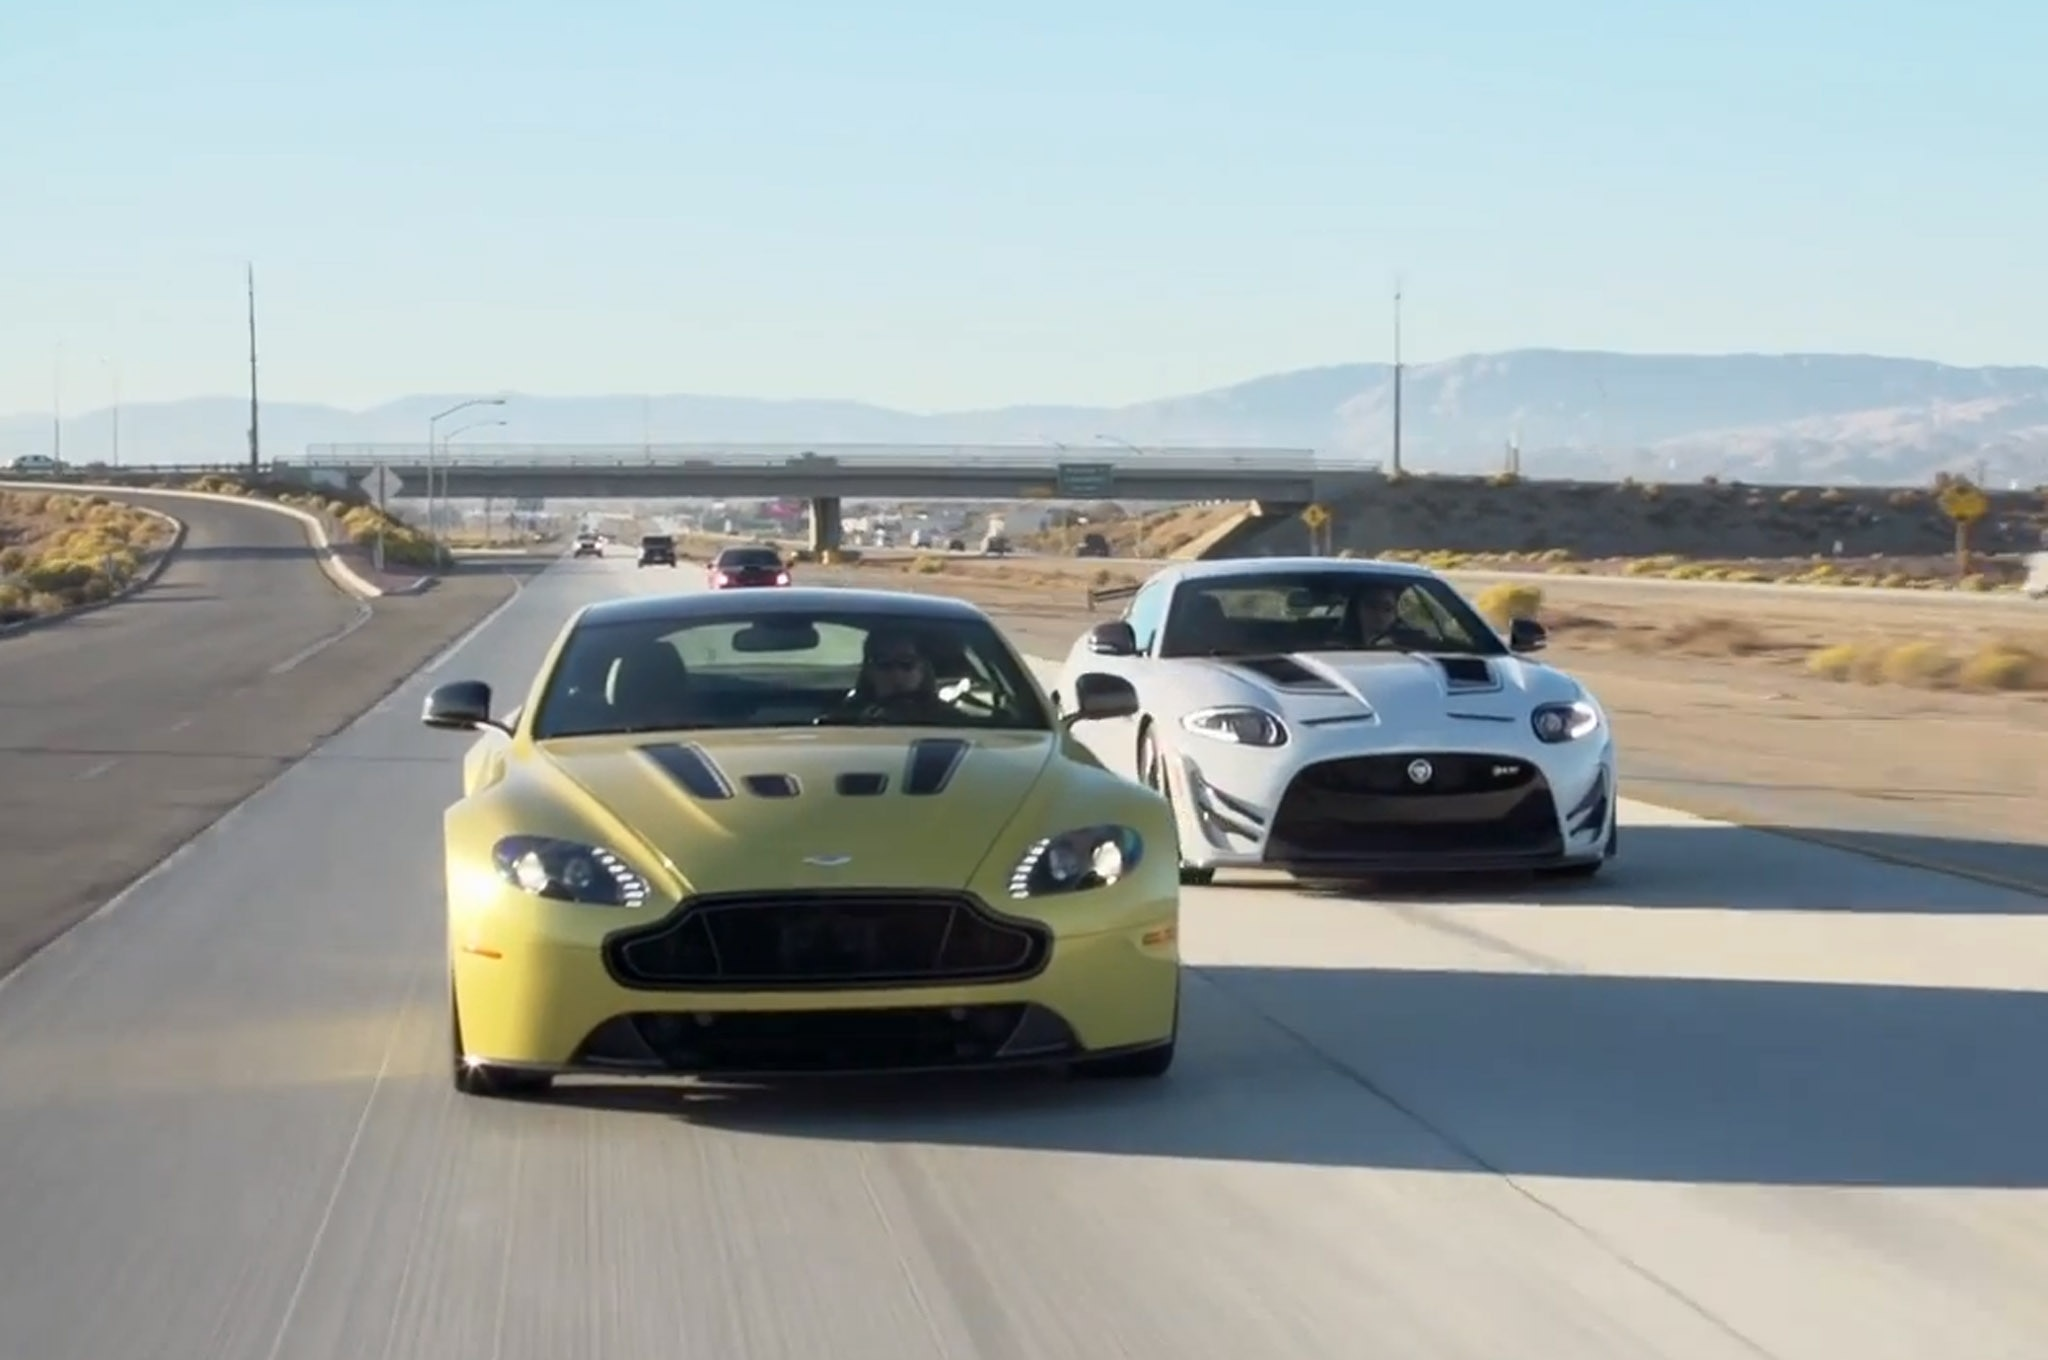 Feature Flick: 2014 Jaguar XKR-S GT vs 2015 Aston Martin V12